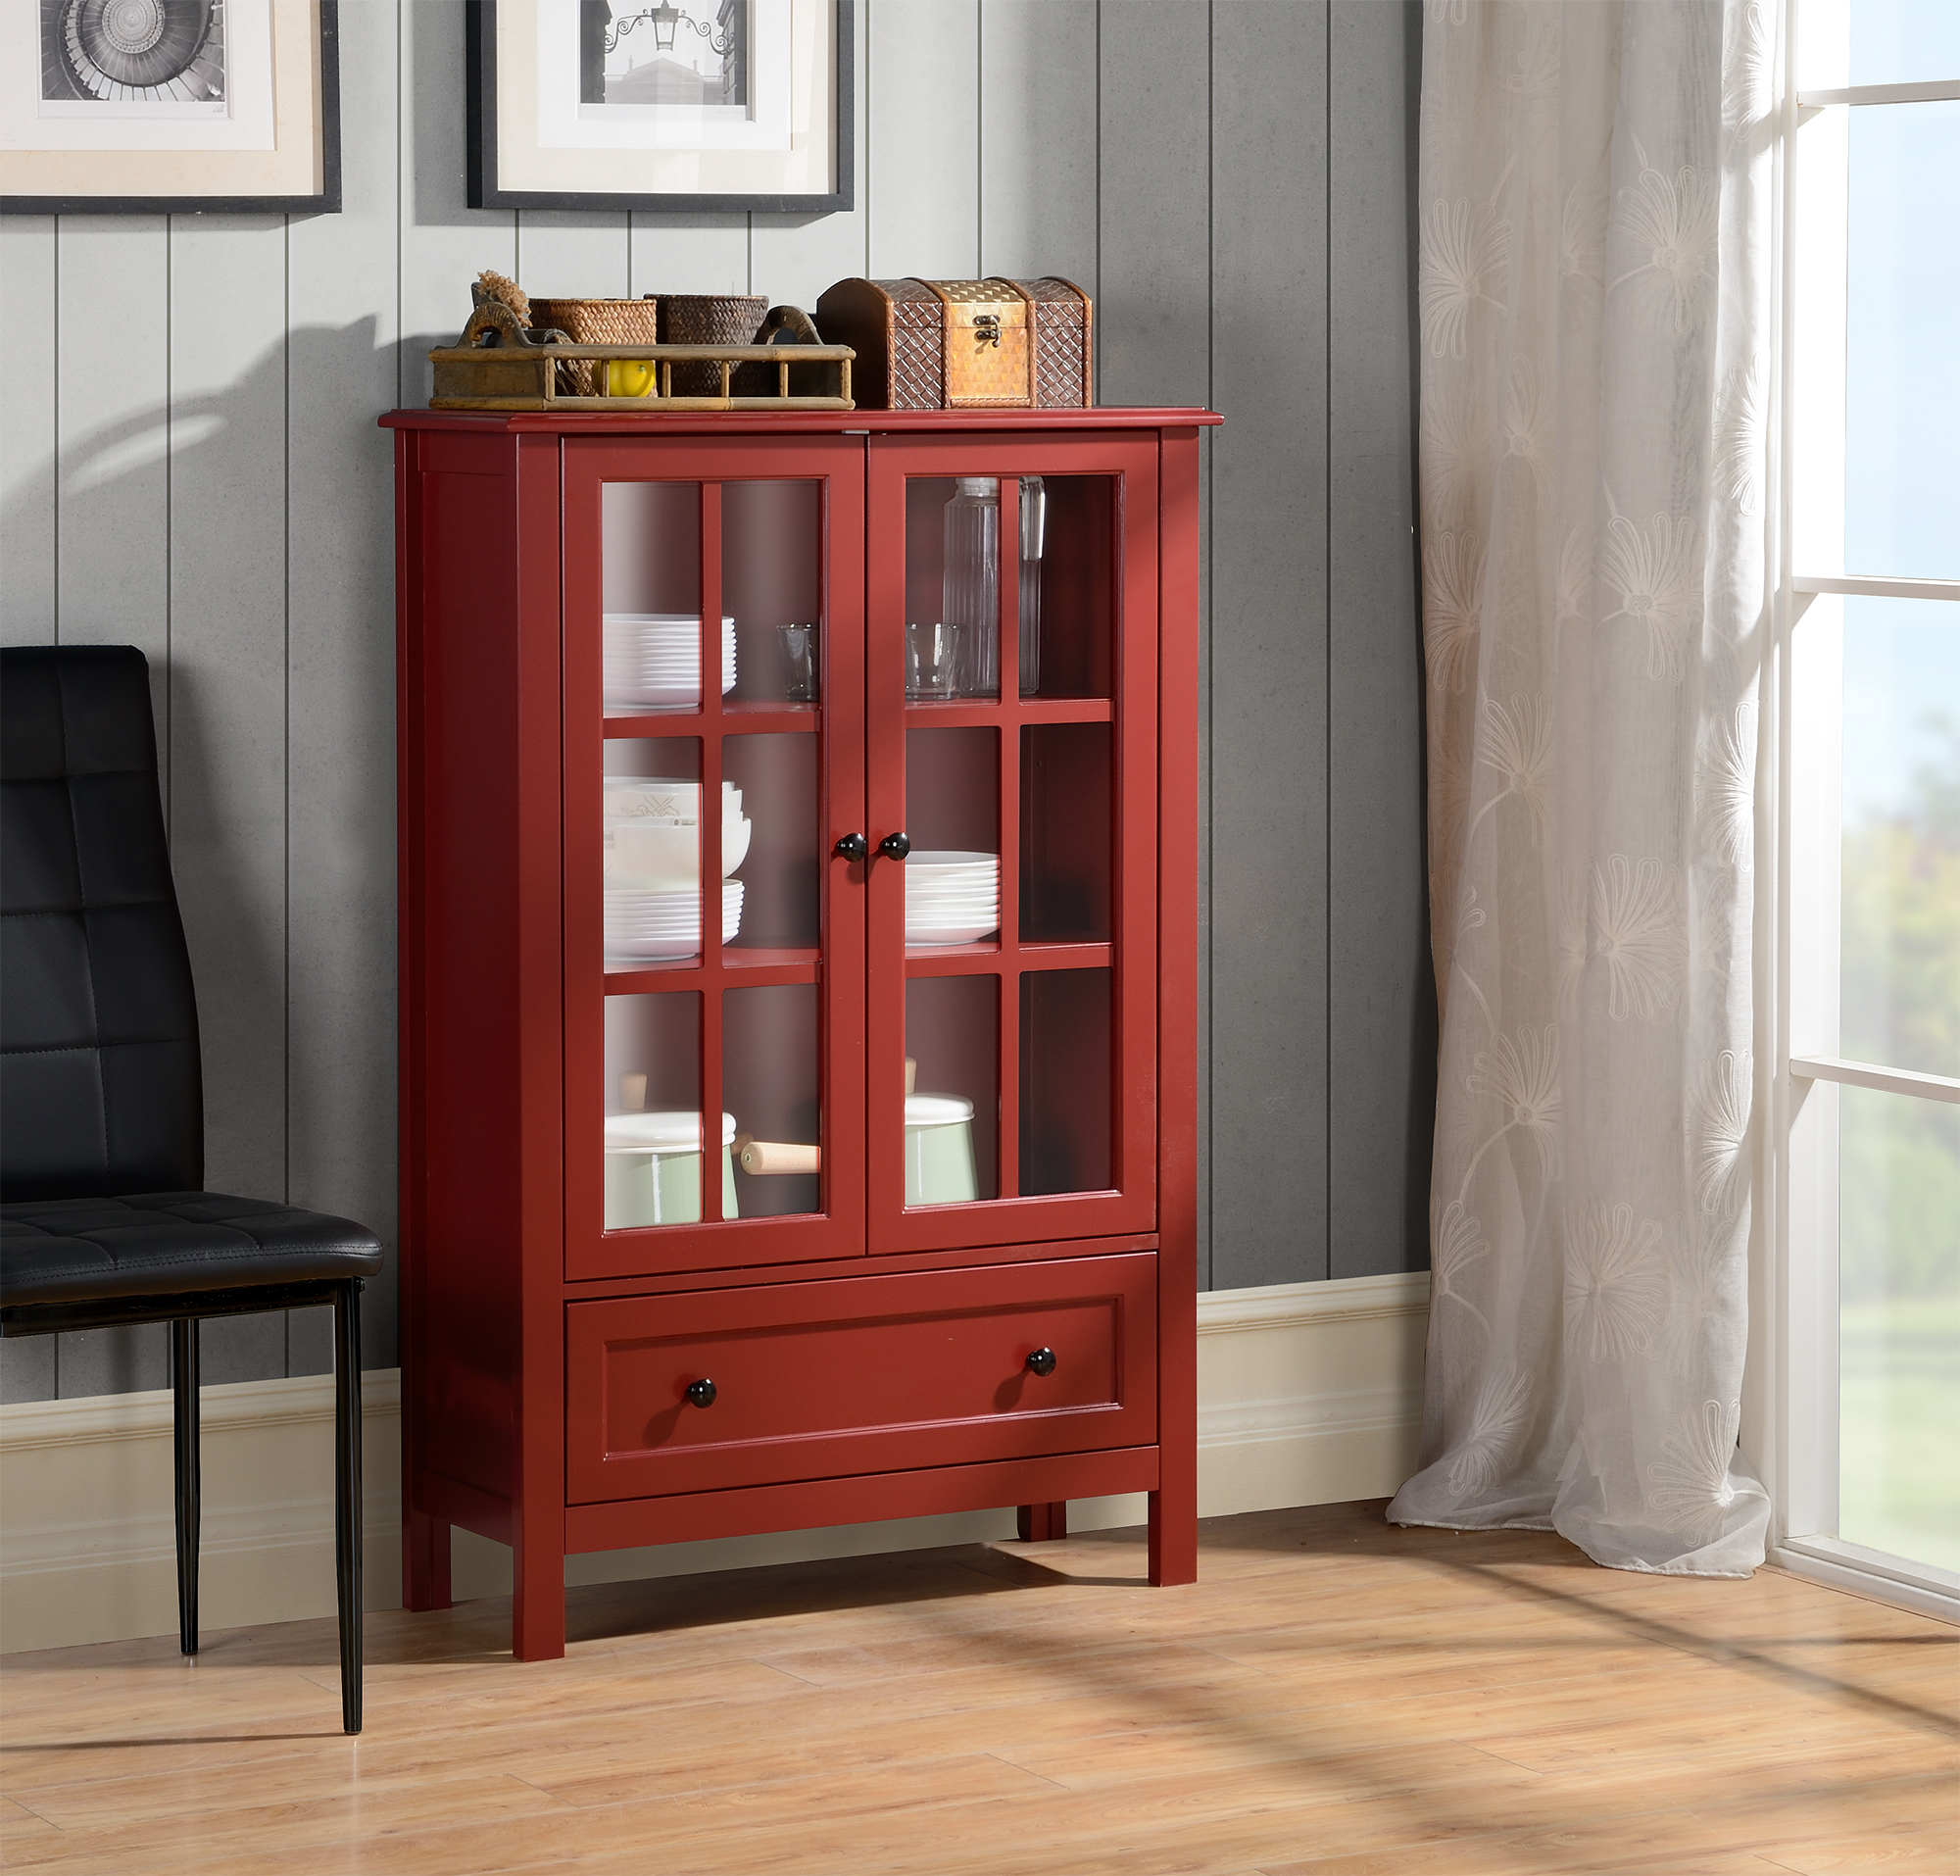 Homestar 2 Door/1 Drawer Glass Cabinet